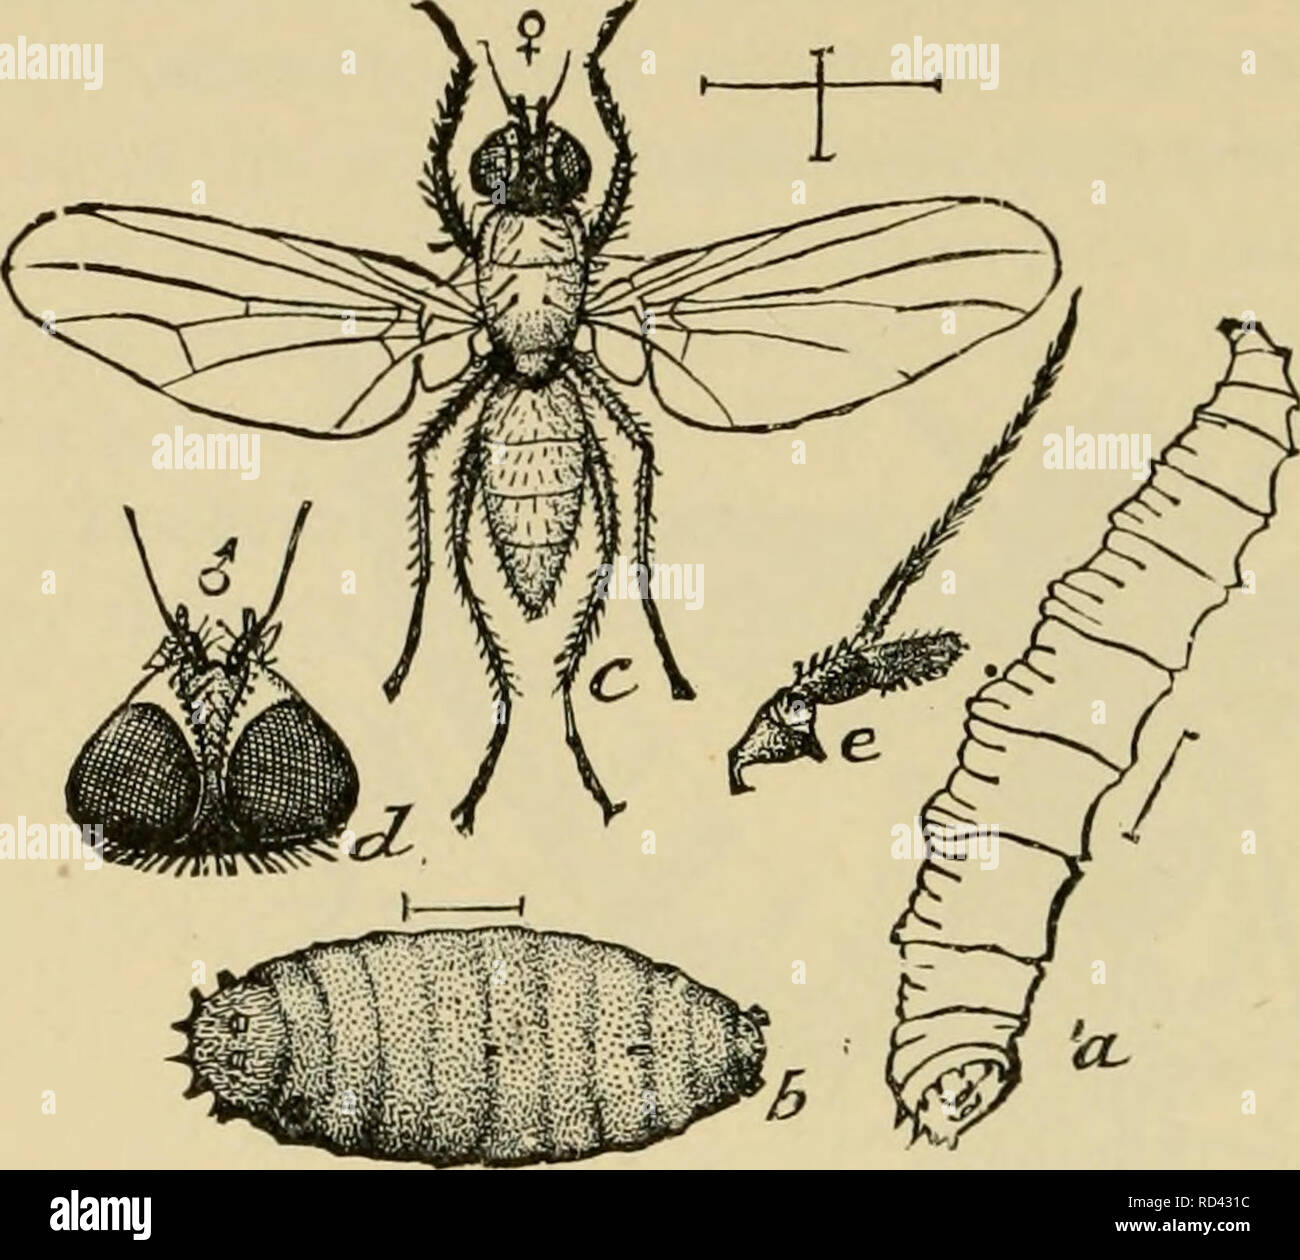 Elementary entomology  Entomology  2 38 ELEMENTARY ENTOMOLOGY The